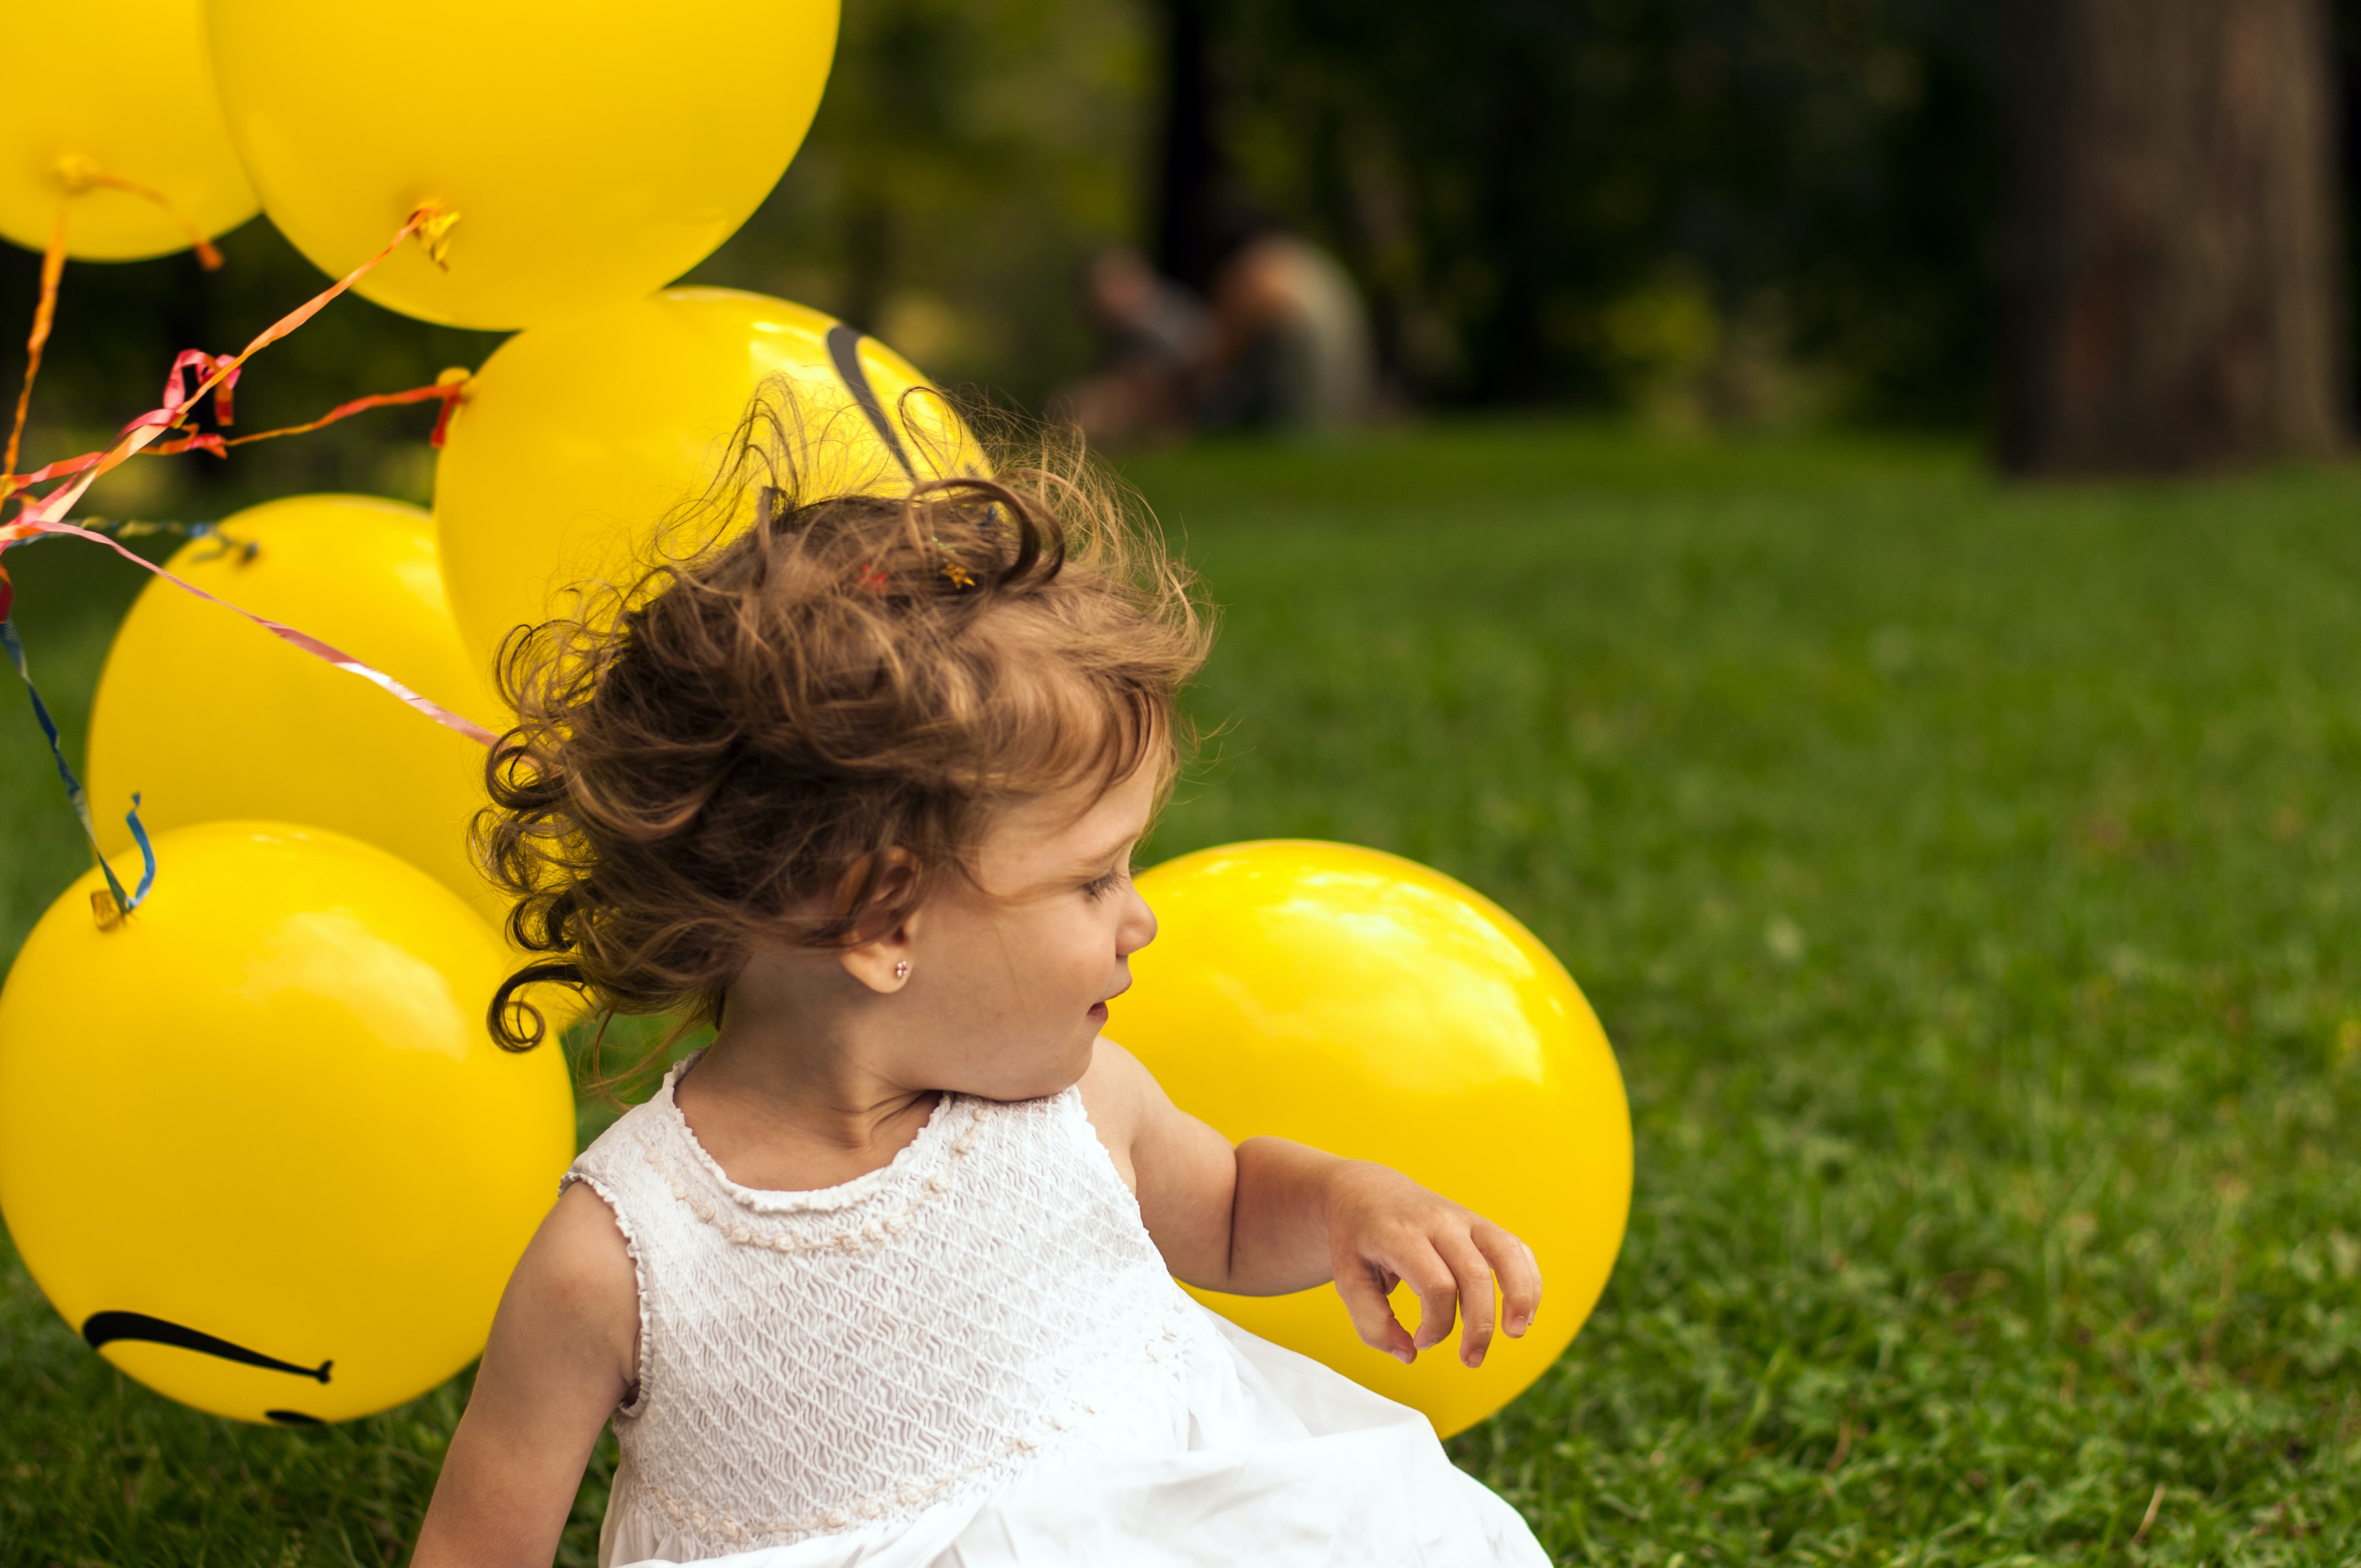 A little girl in a white dress sitting down next to a bunch of yellow balloons.